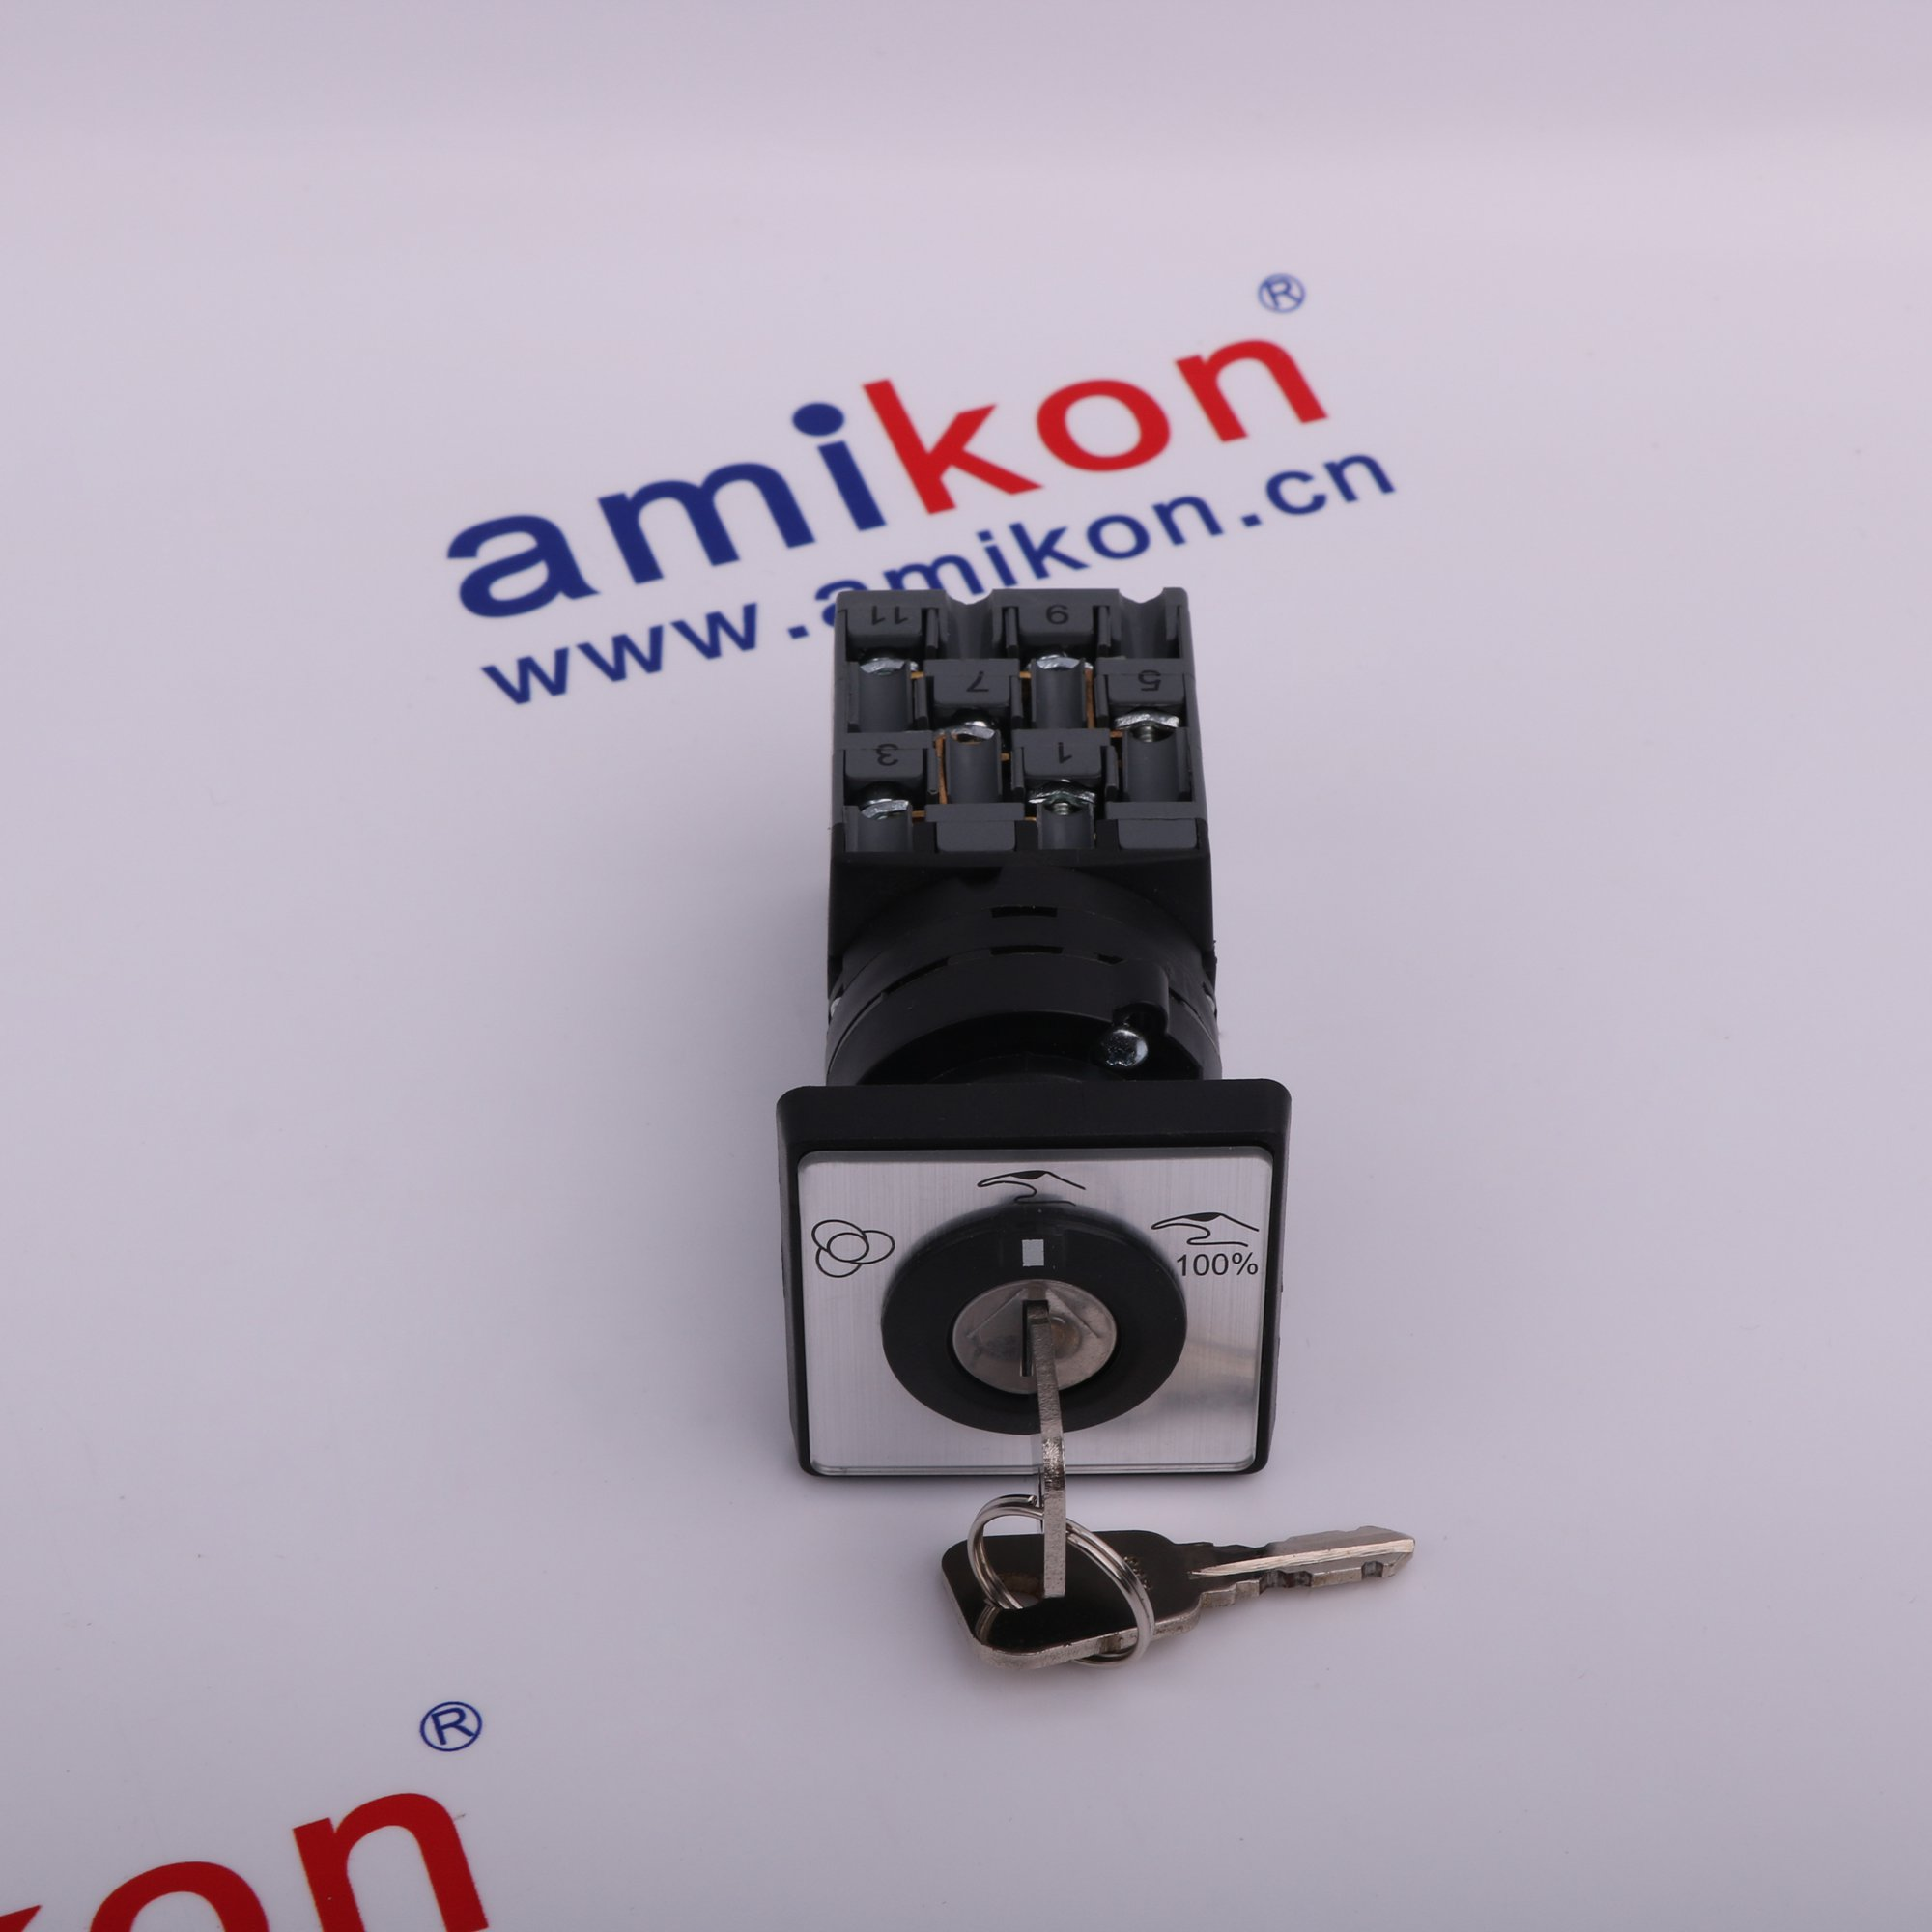 ABB	PFSK102  YM322001-EG IN STOCK FOR SALE